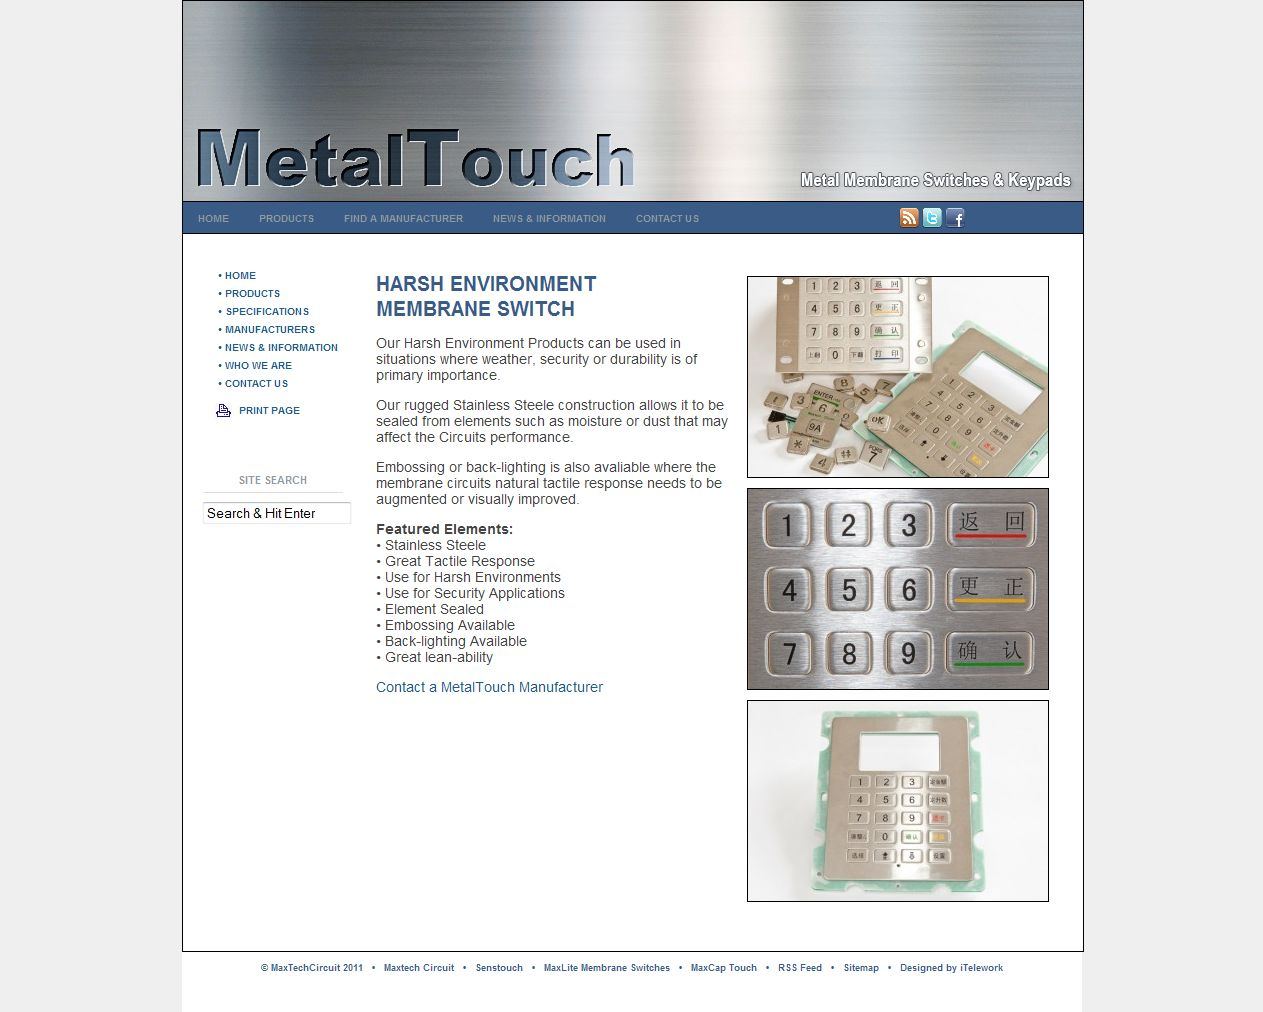 metaltouch2